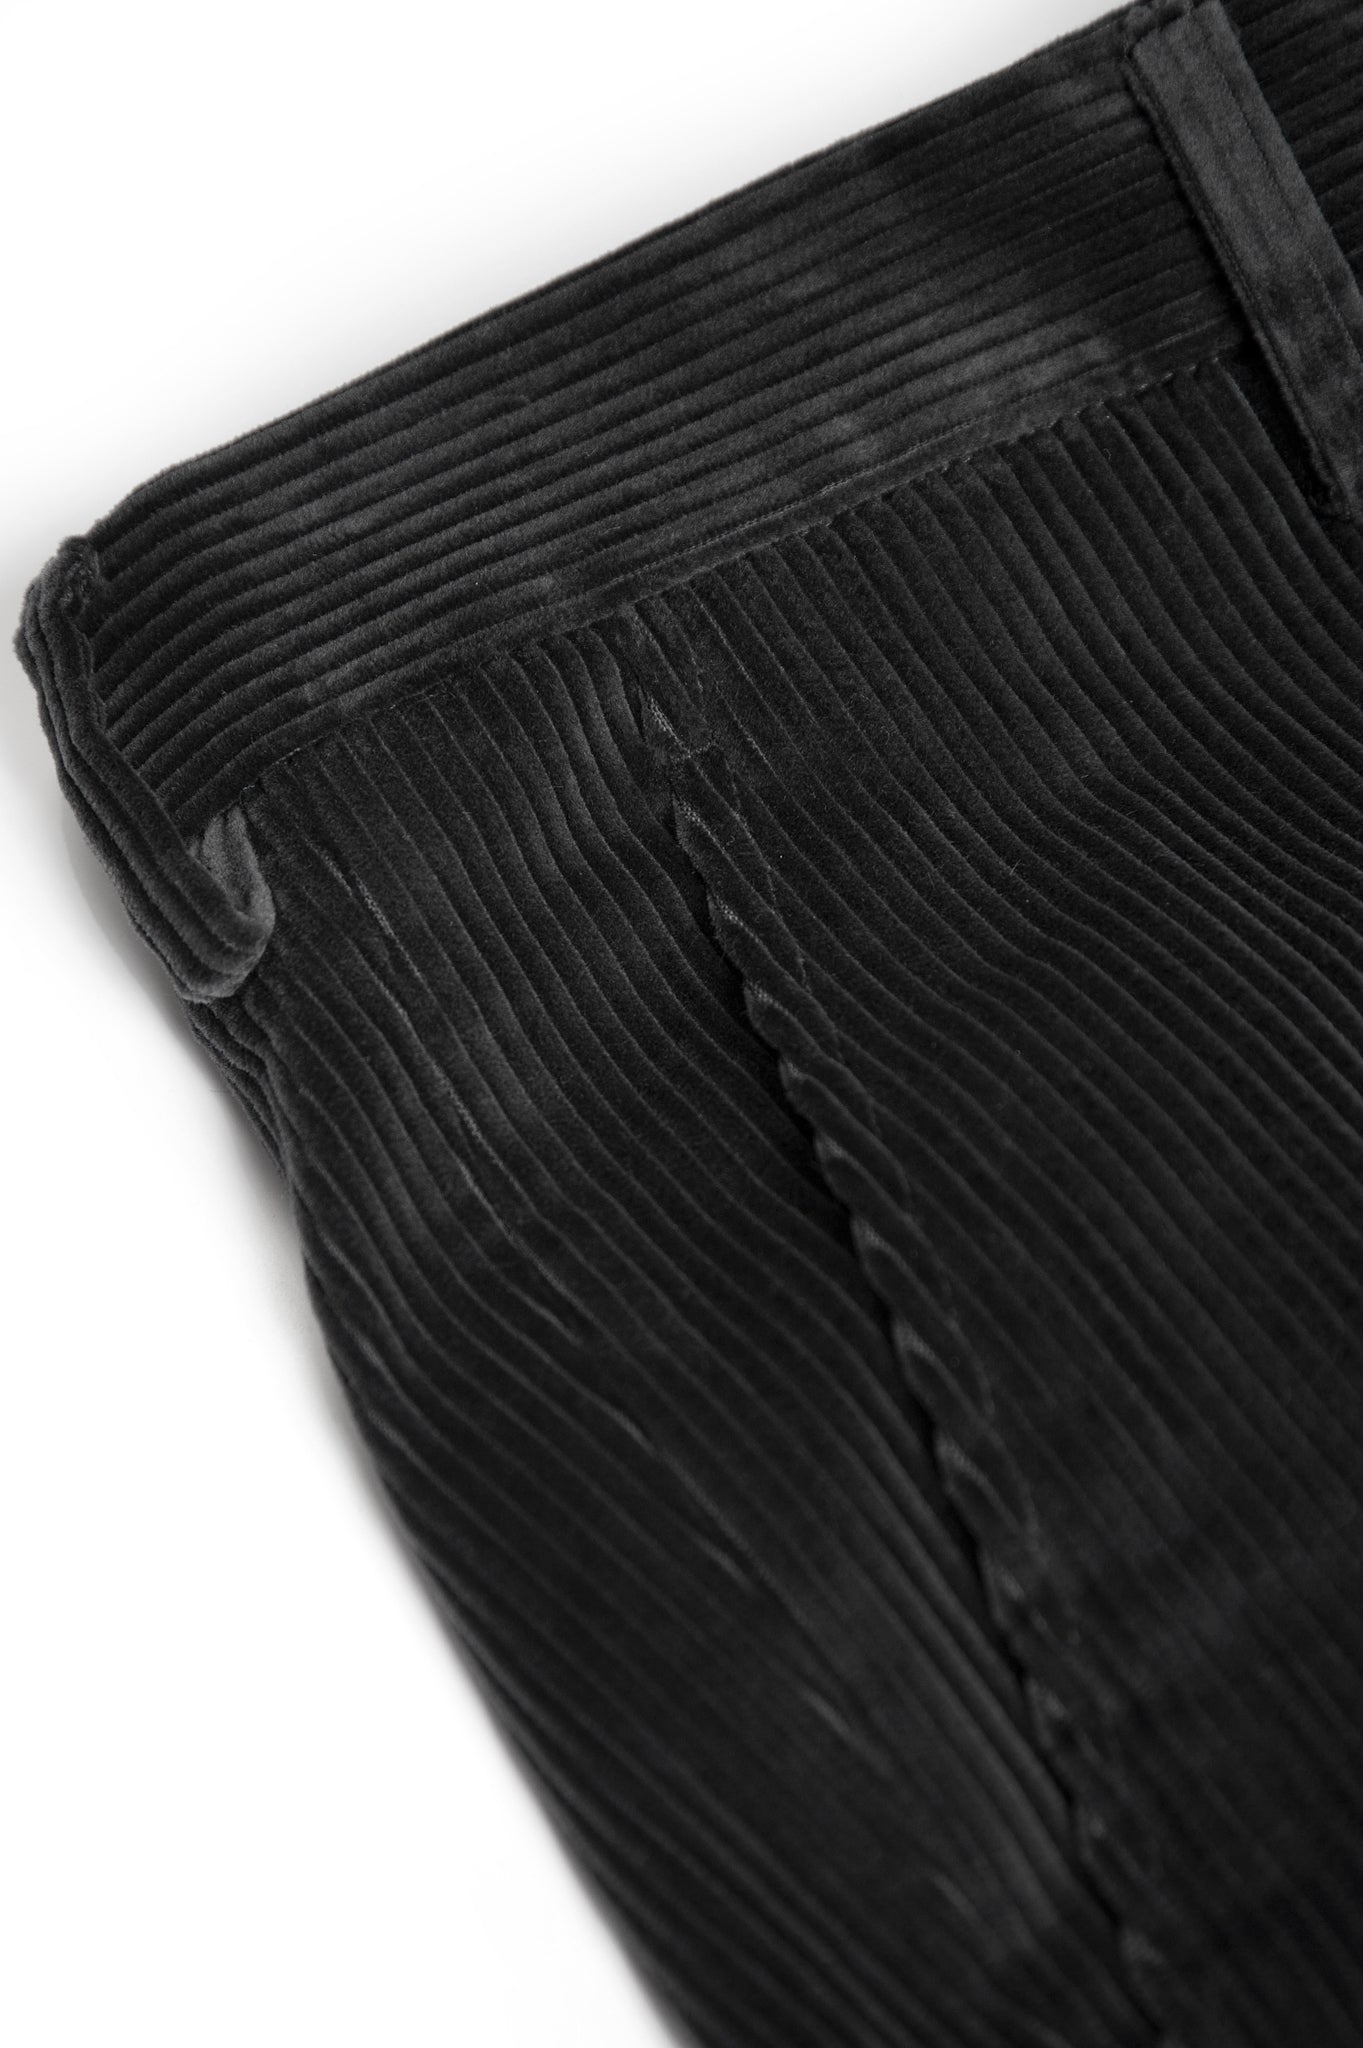 Boris Chino Pants Soft Cotton Corduroy (charcoal)